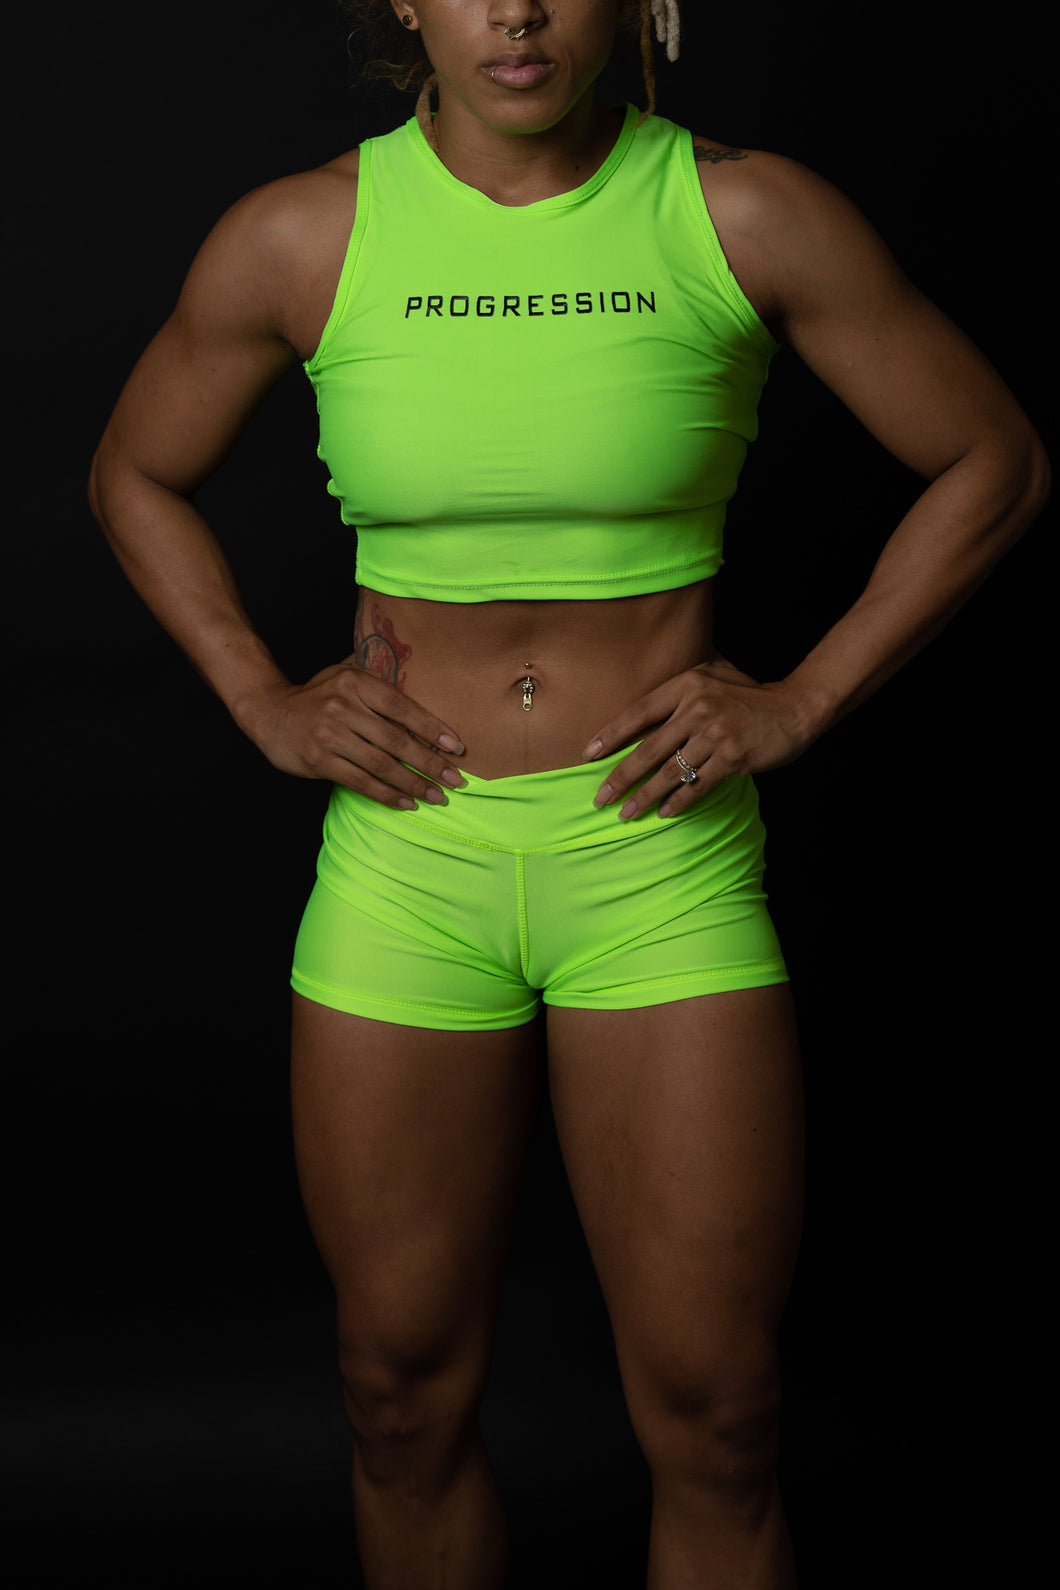 Electric Green Sleeveless Progression Crop